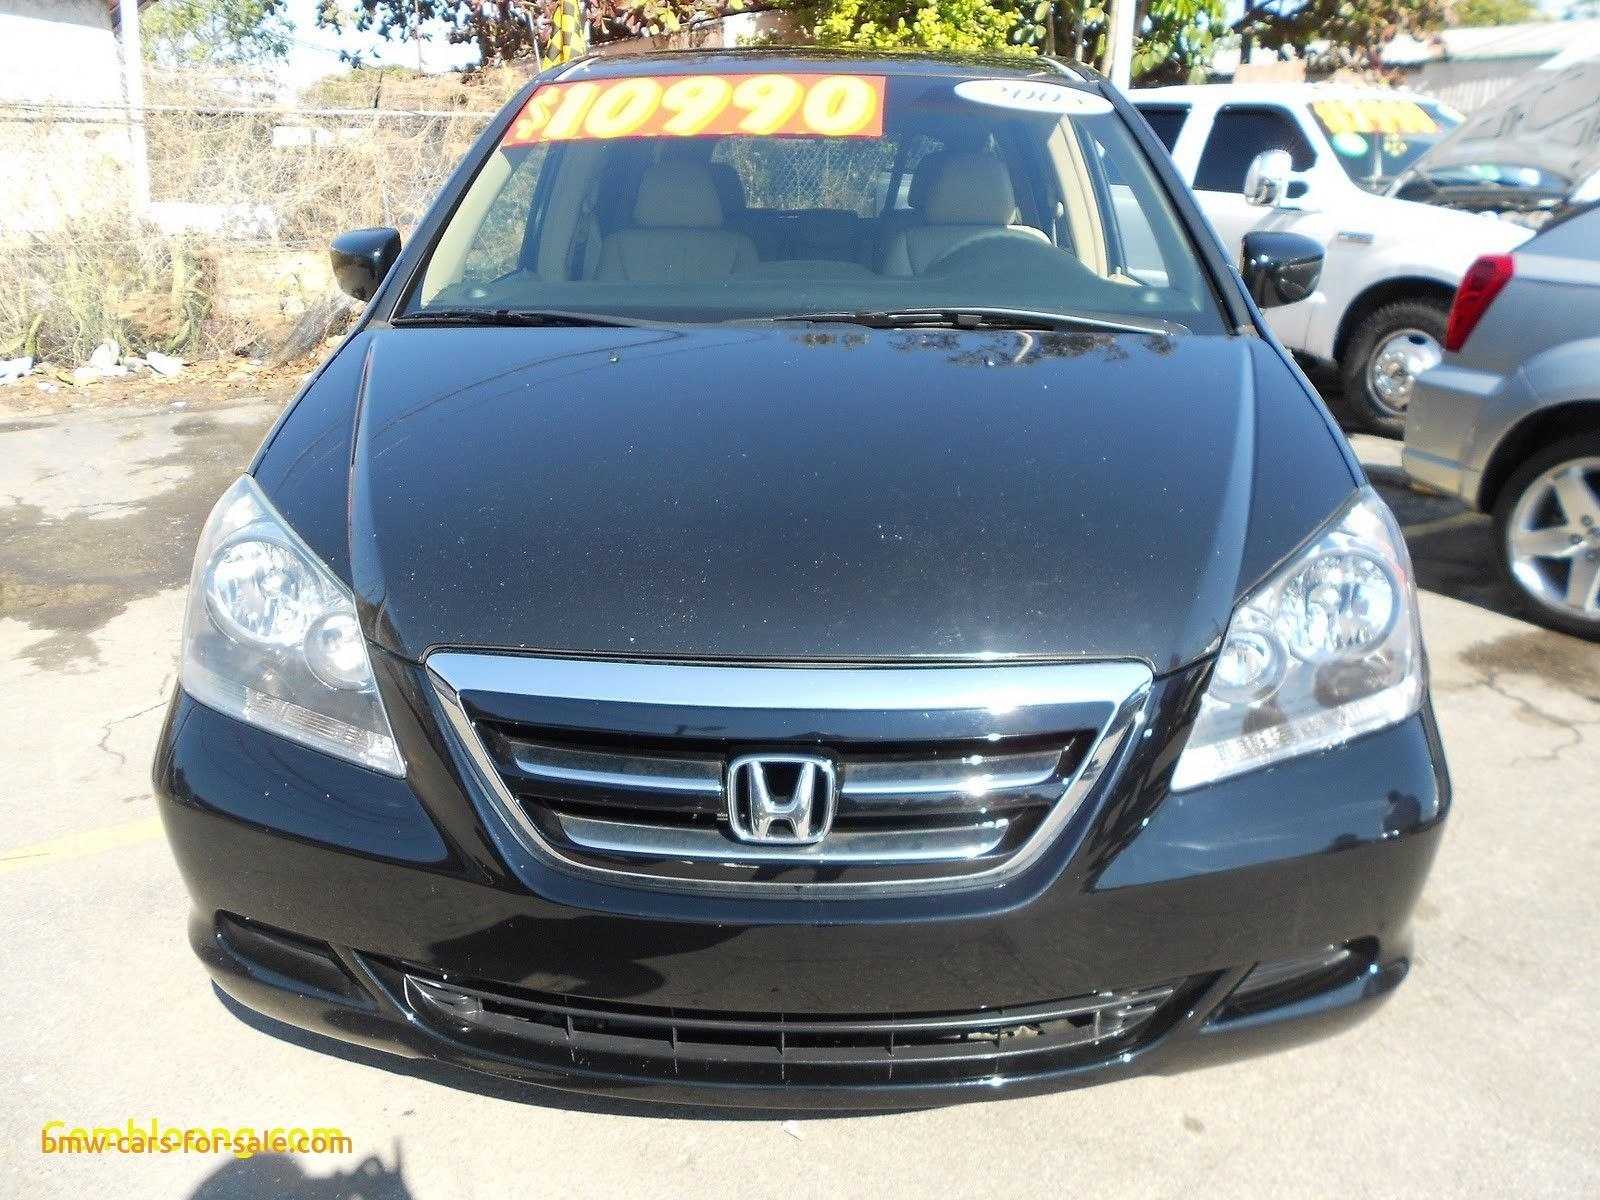 Cars for Sale Near Me for Cheap Fresh Awesome Cheap Used